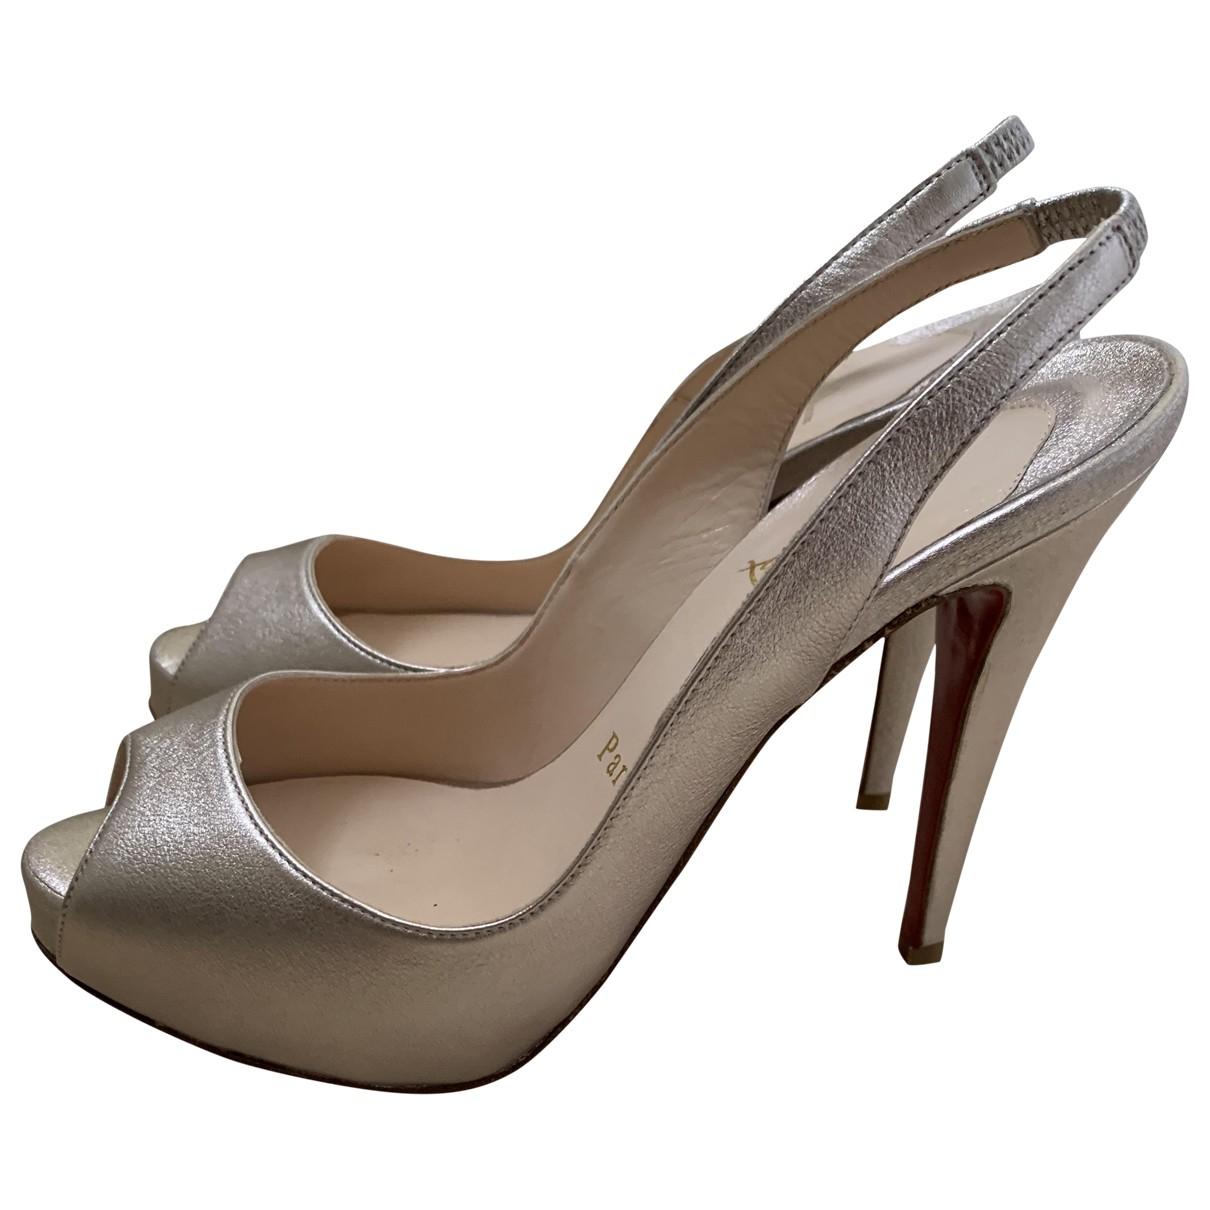 Tacones Private Number de Cuero Christian Louboutin